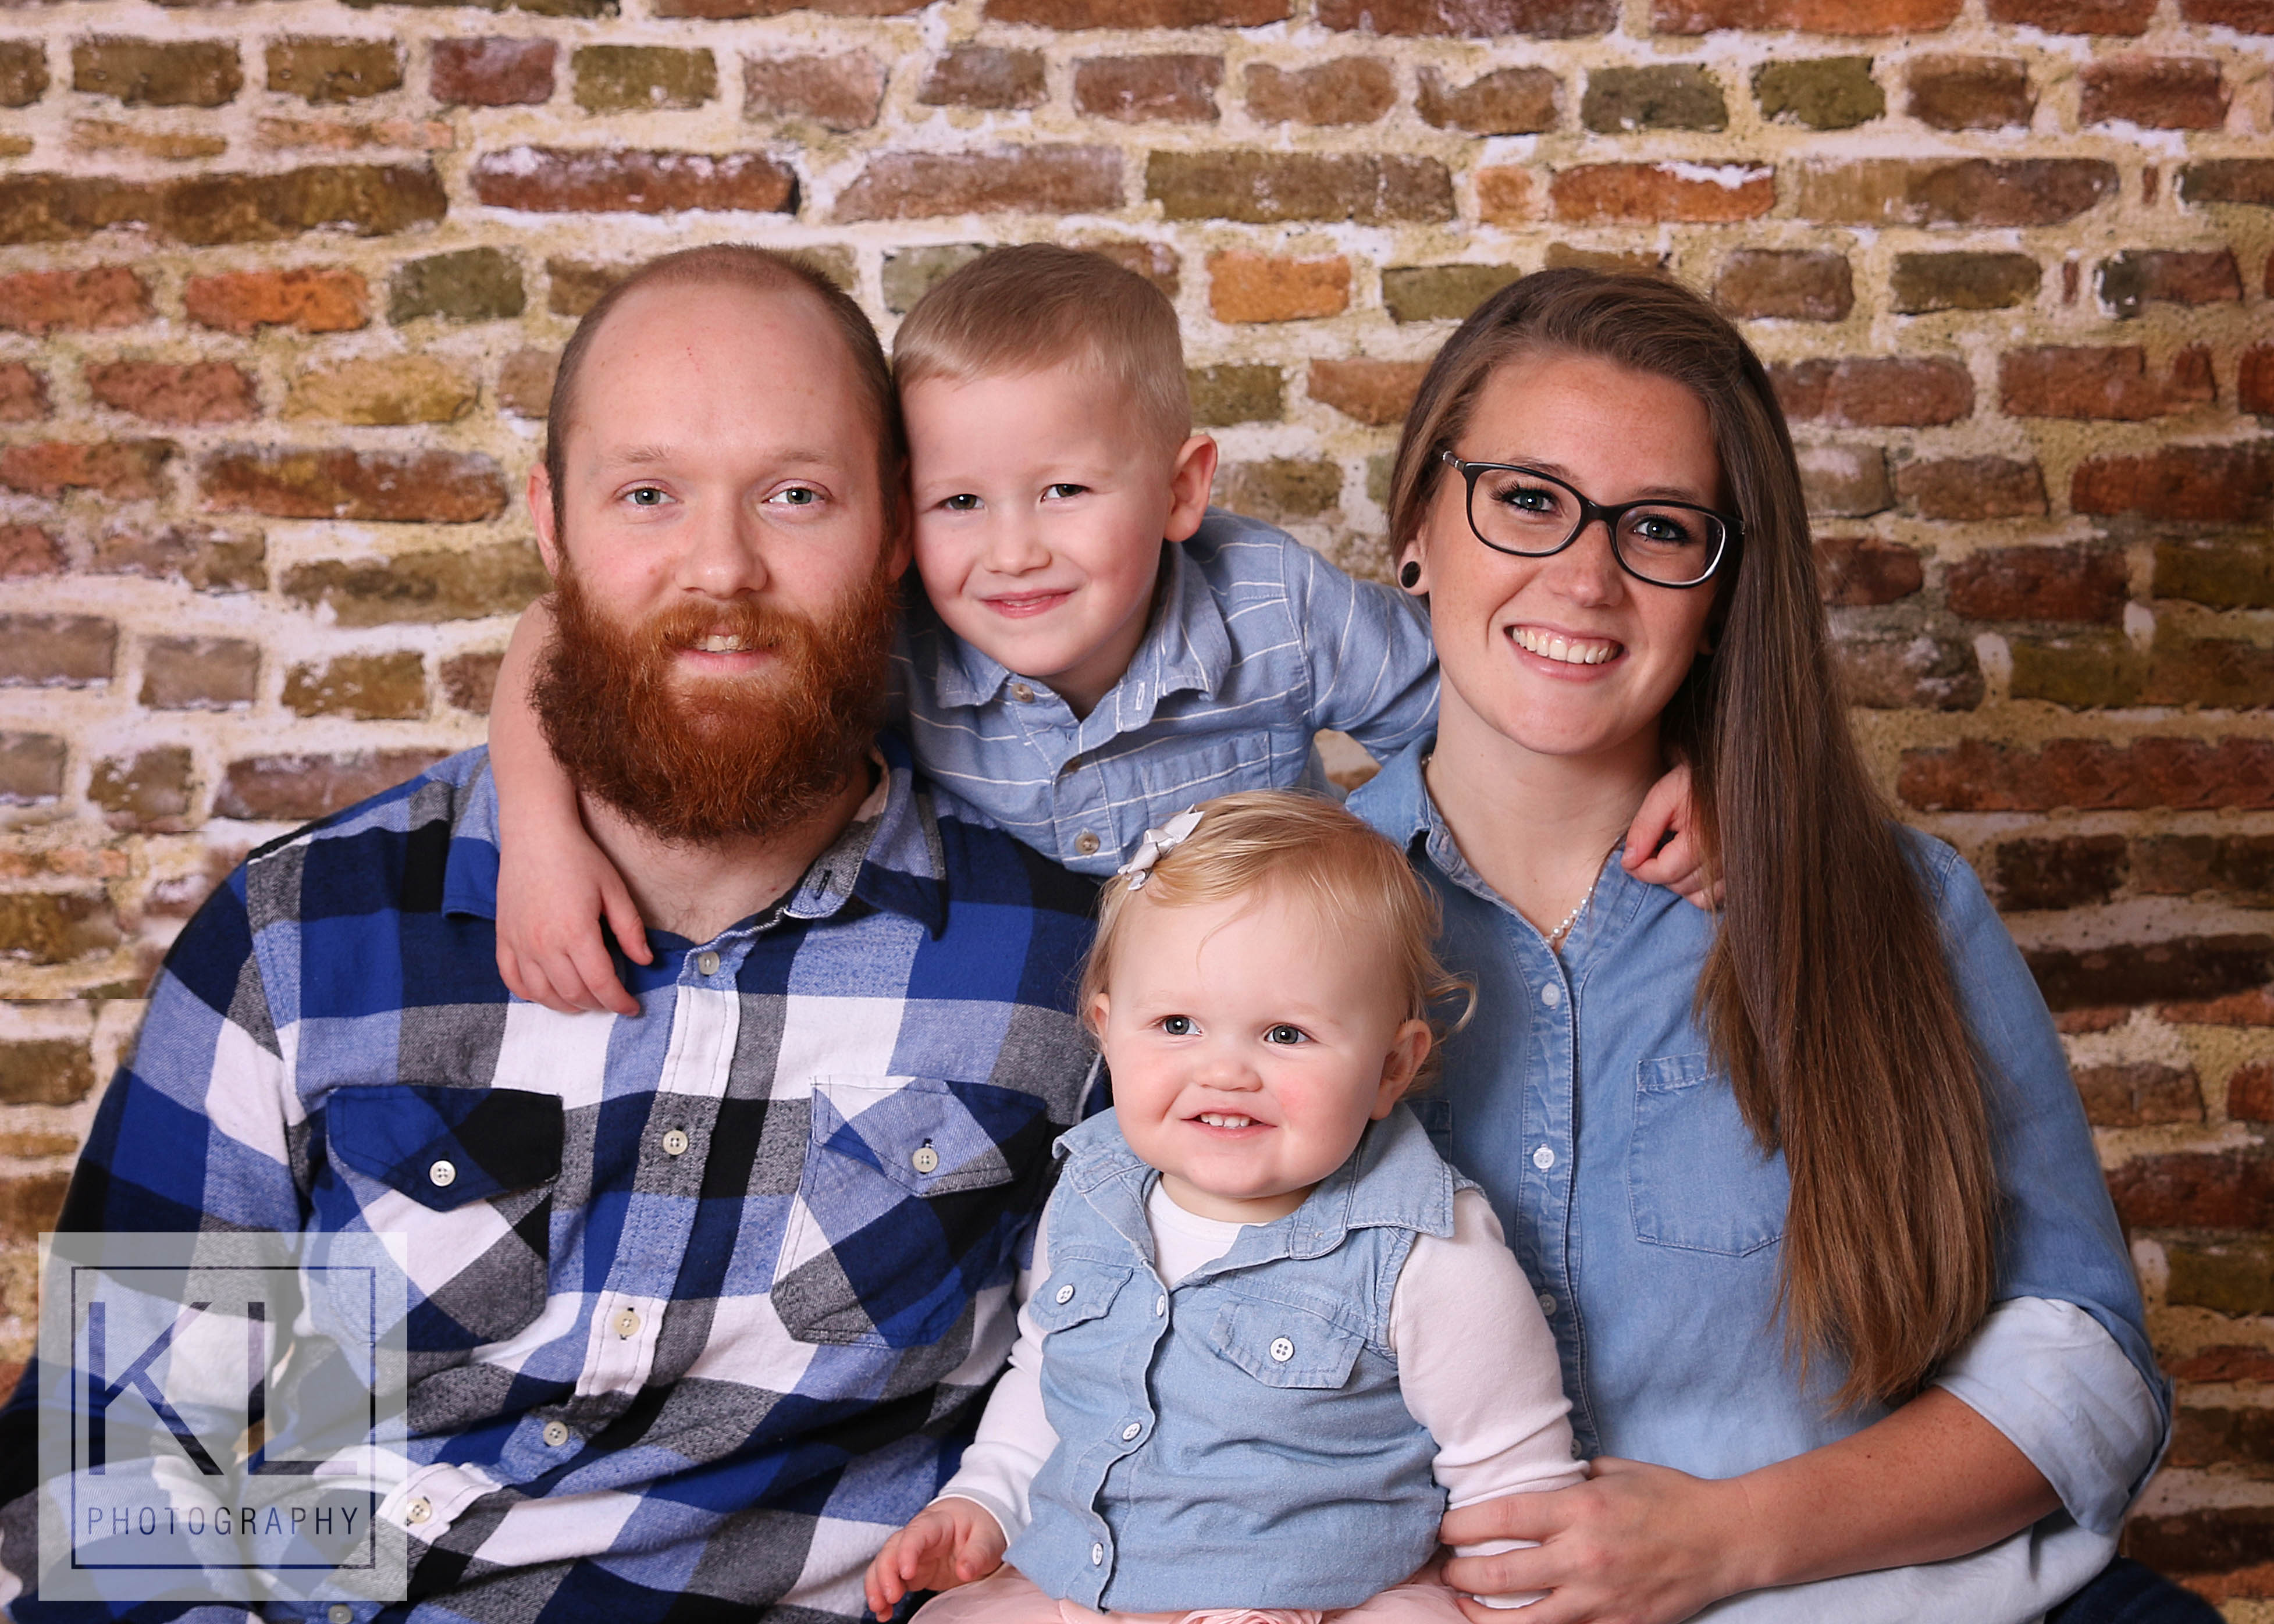 Binghamton Area Family Photographer Studio, indoor